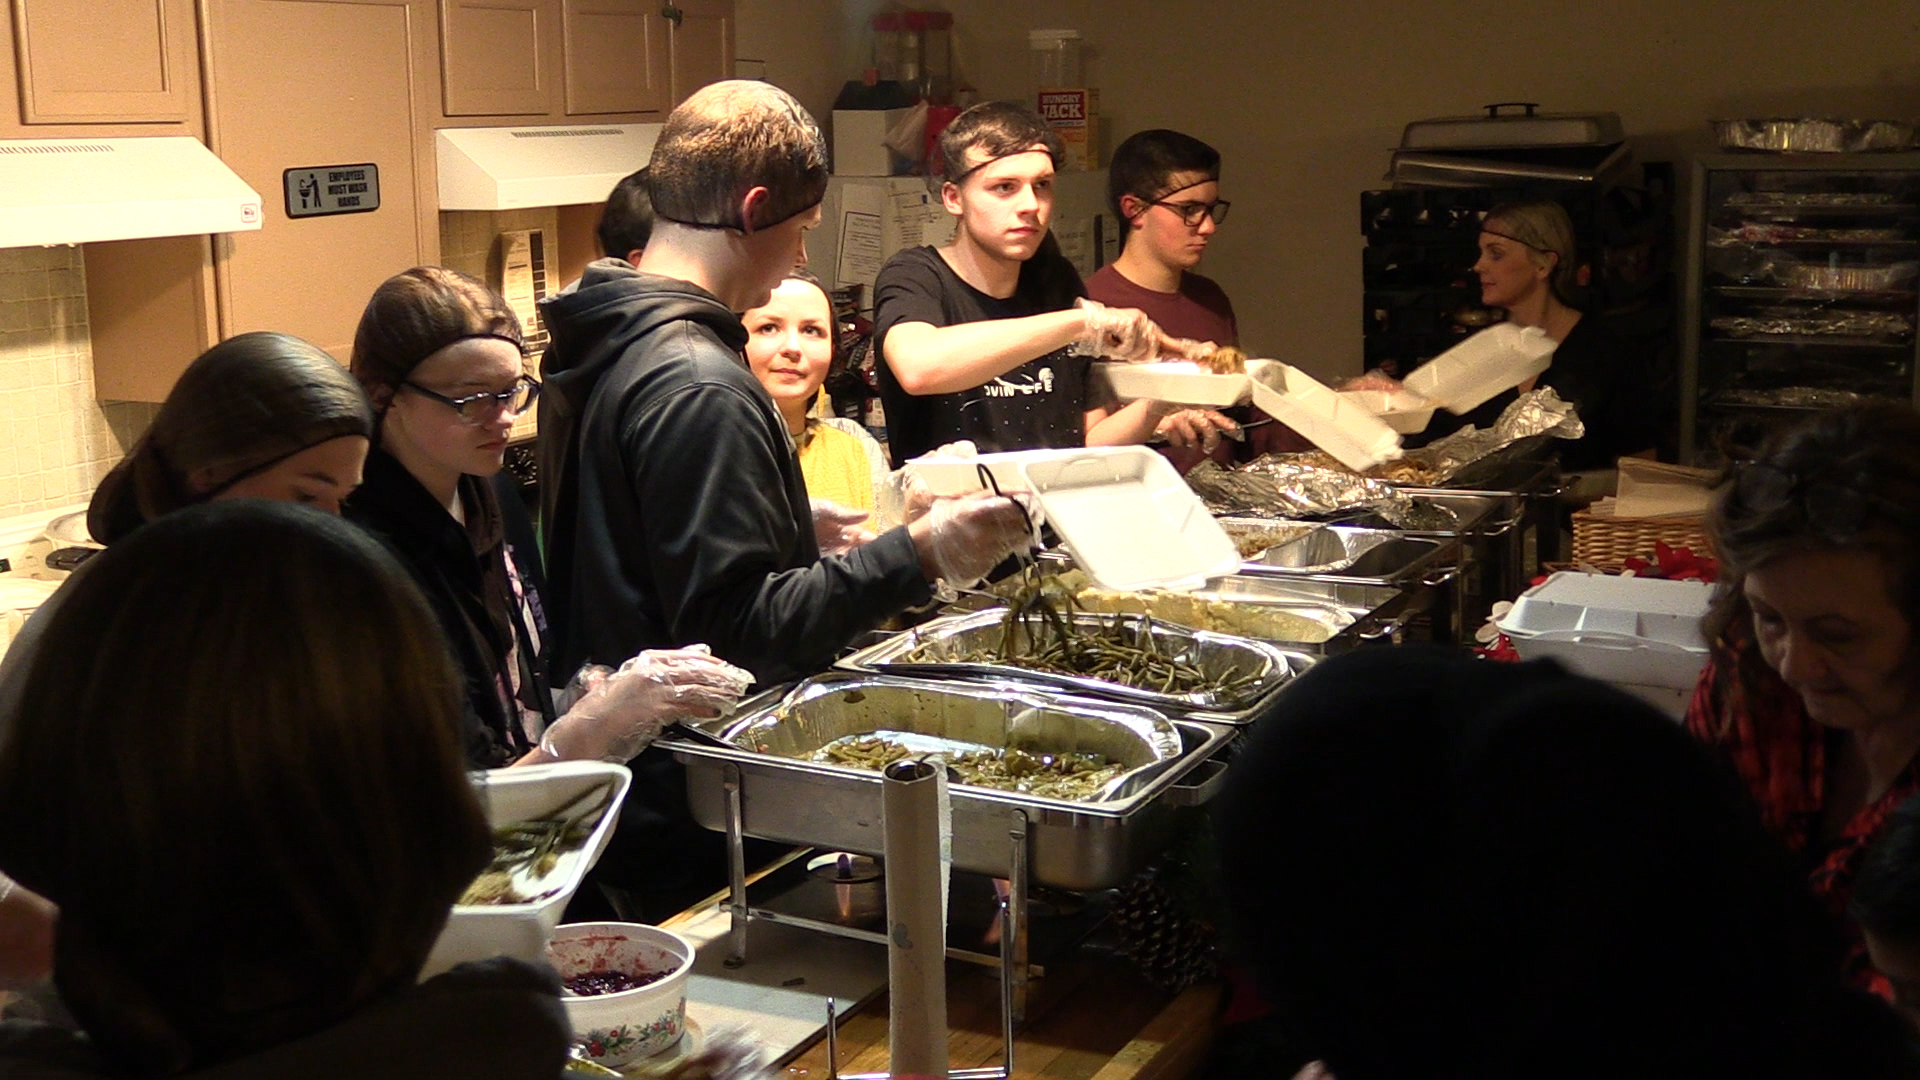 PMC physicians provide meals for those in need